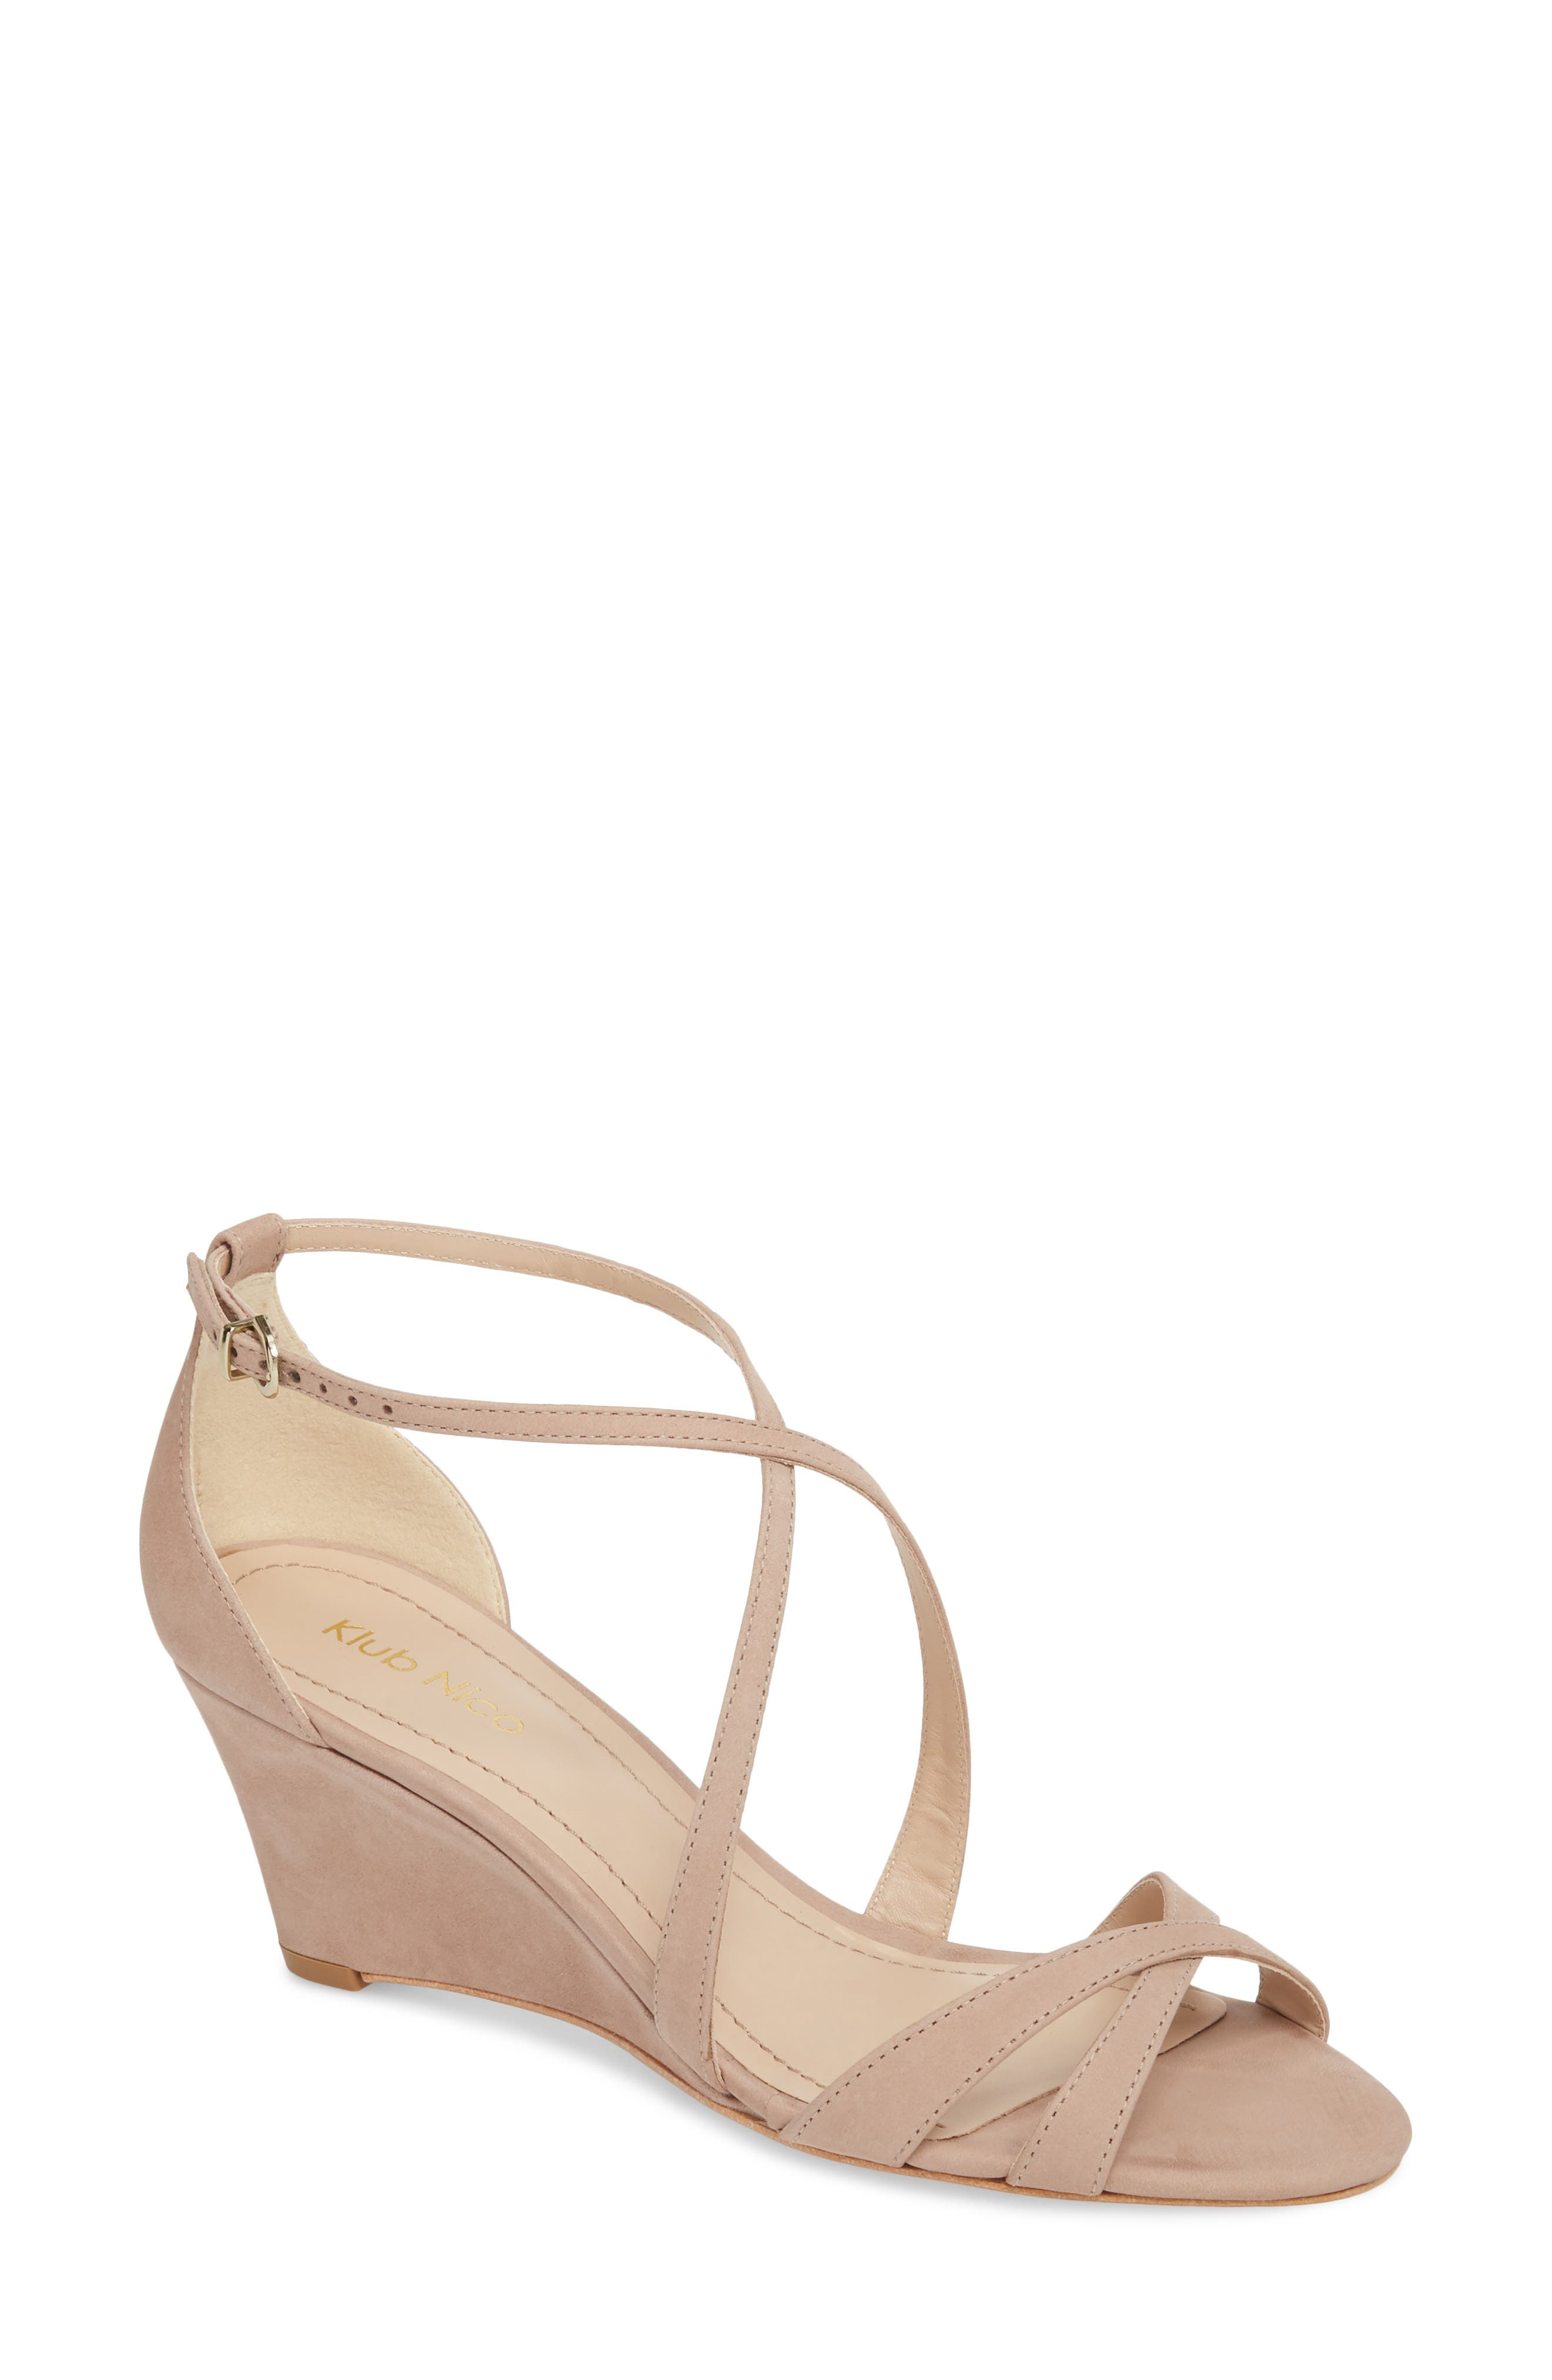 where to buy klub nico shoes nordstrom 830338